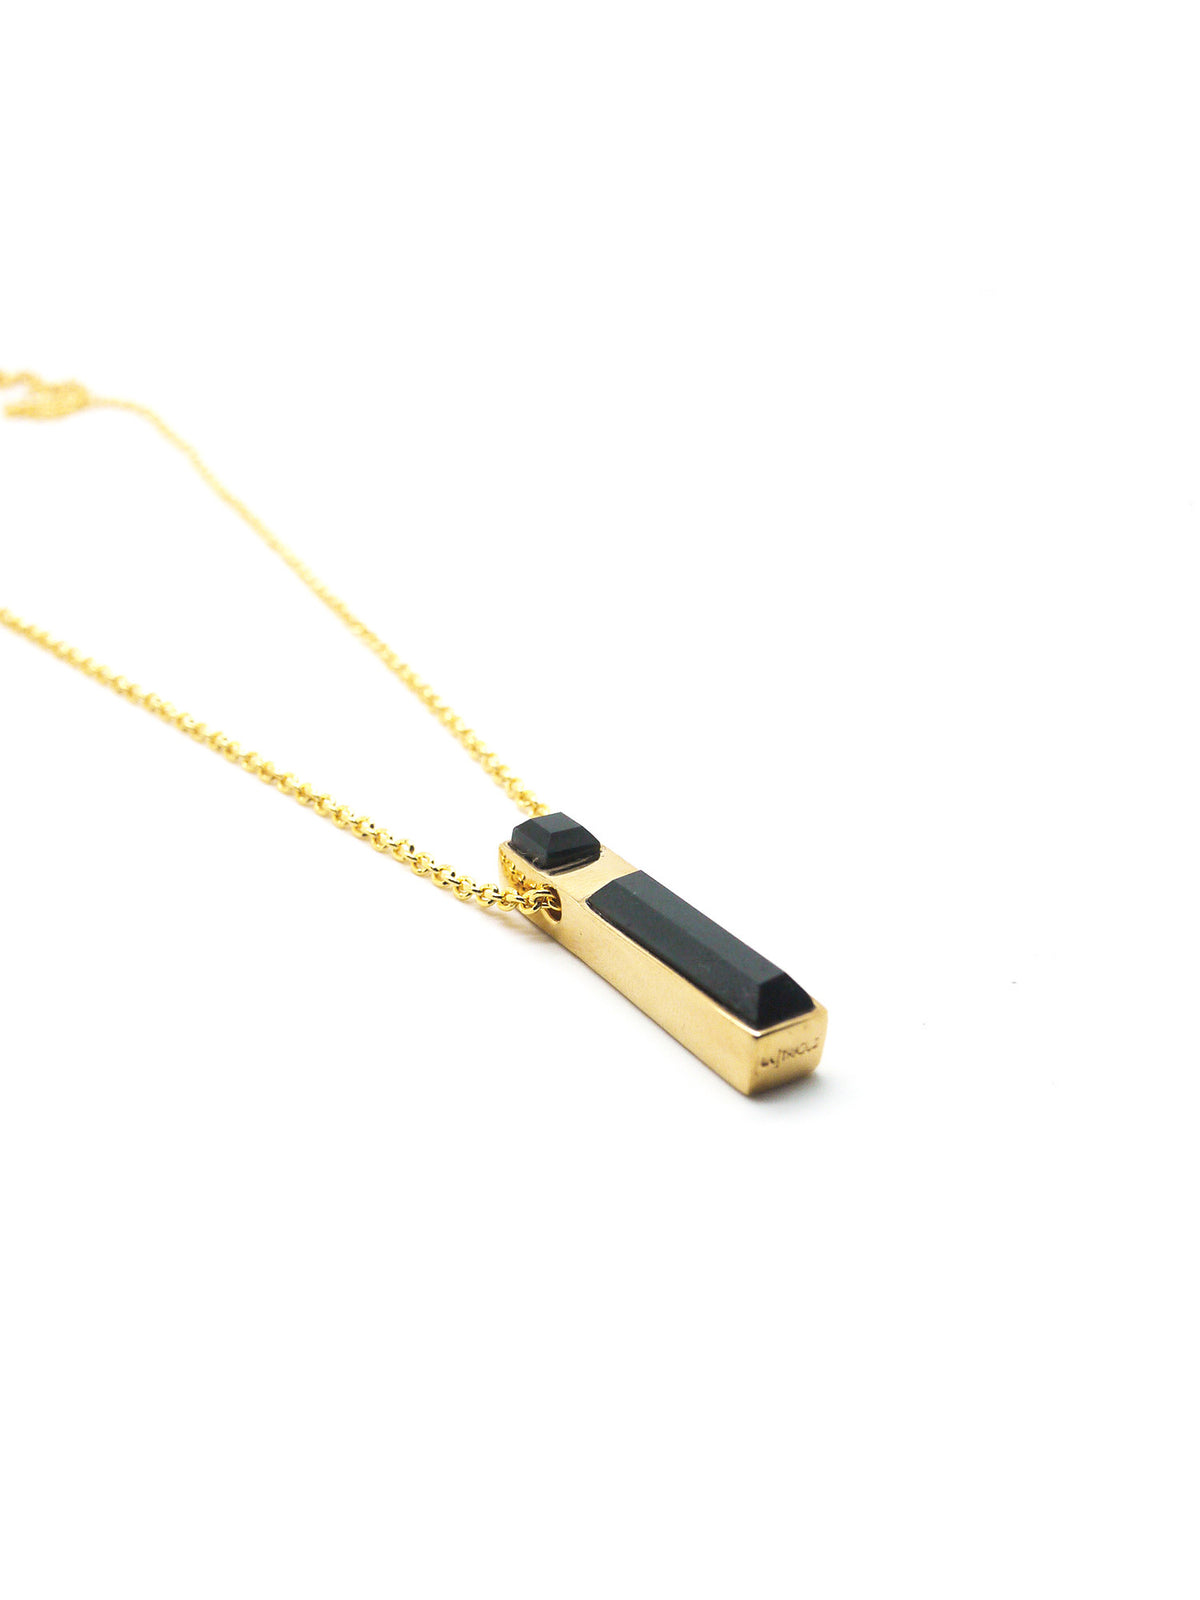 Linear Necklace - Gold - Onyx